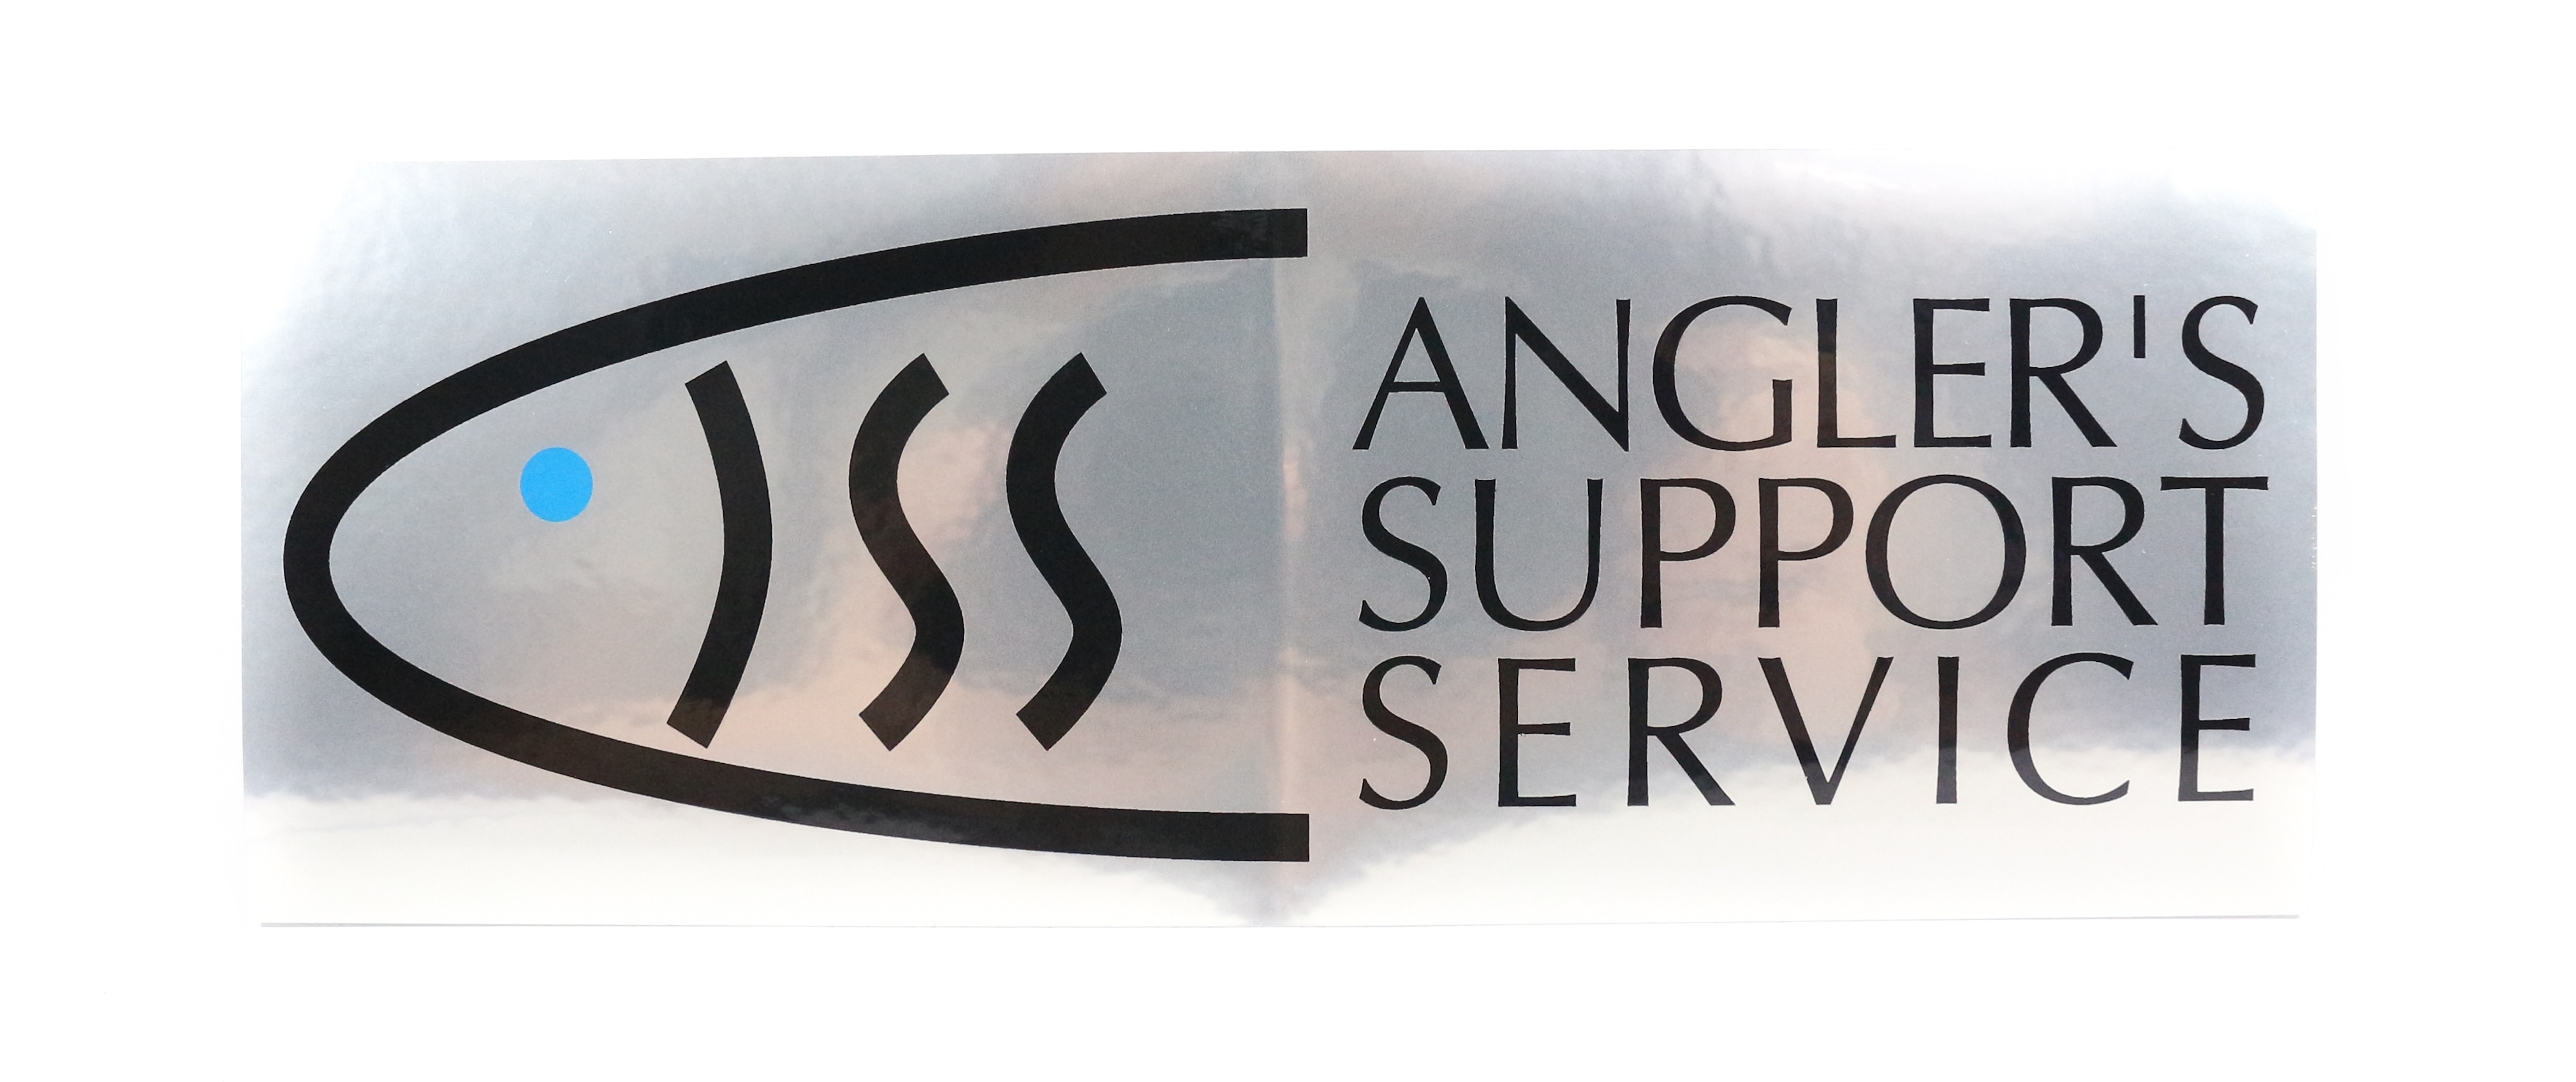 Sale Anglers Support Service Sticker Silver (0041)